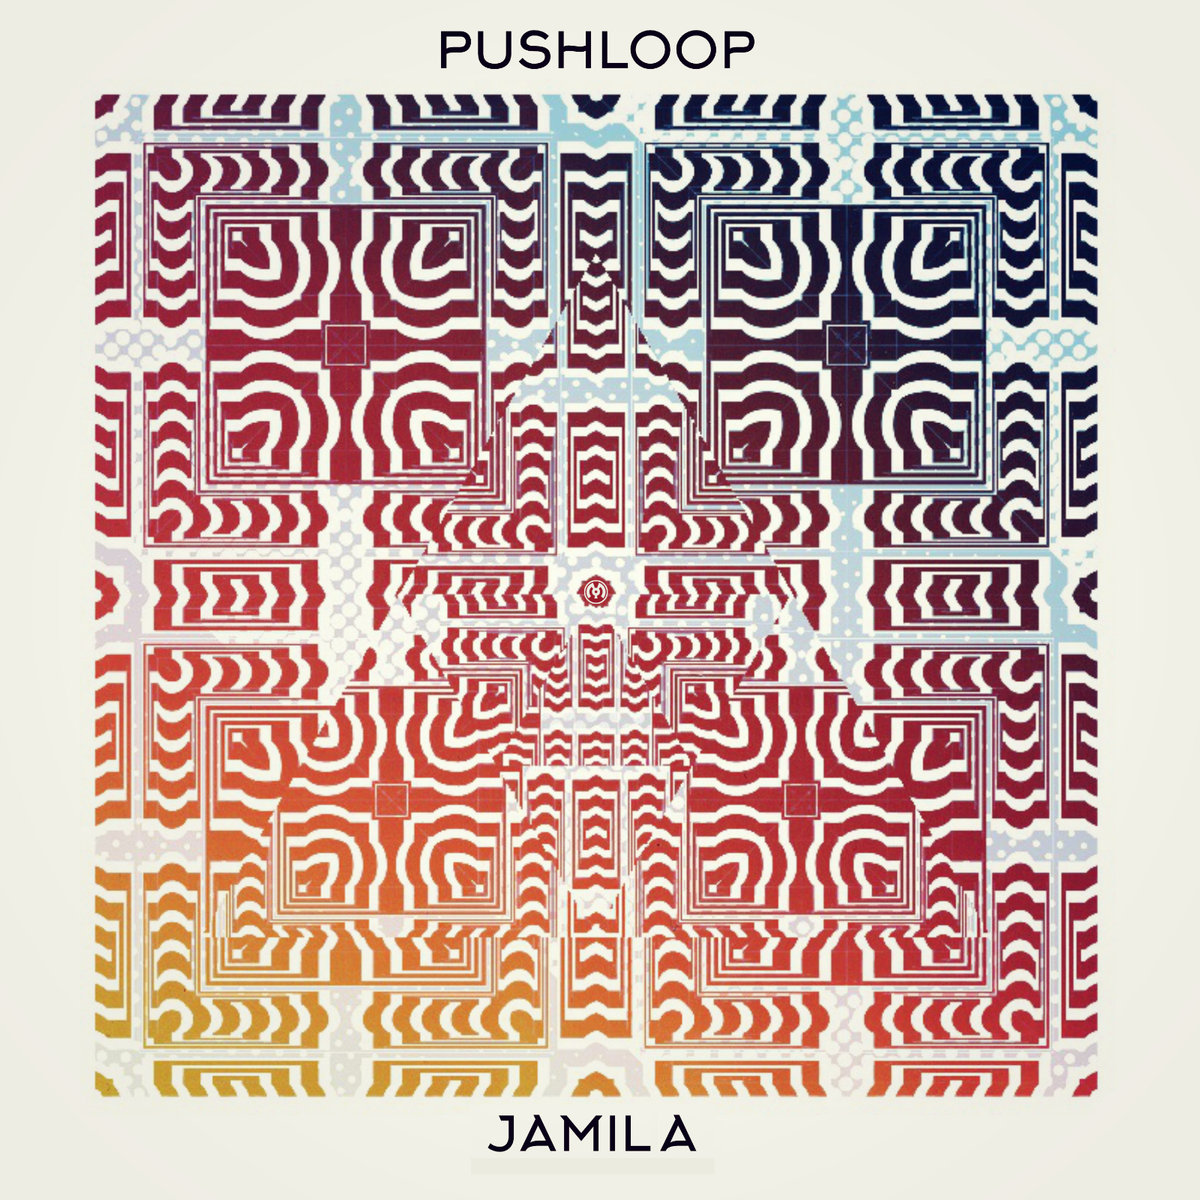 Pushloop - Jamila @ 'Jamila' album (electronic, dubstep)